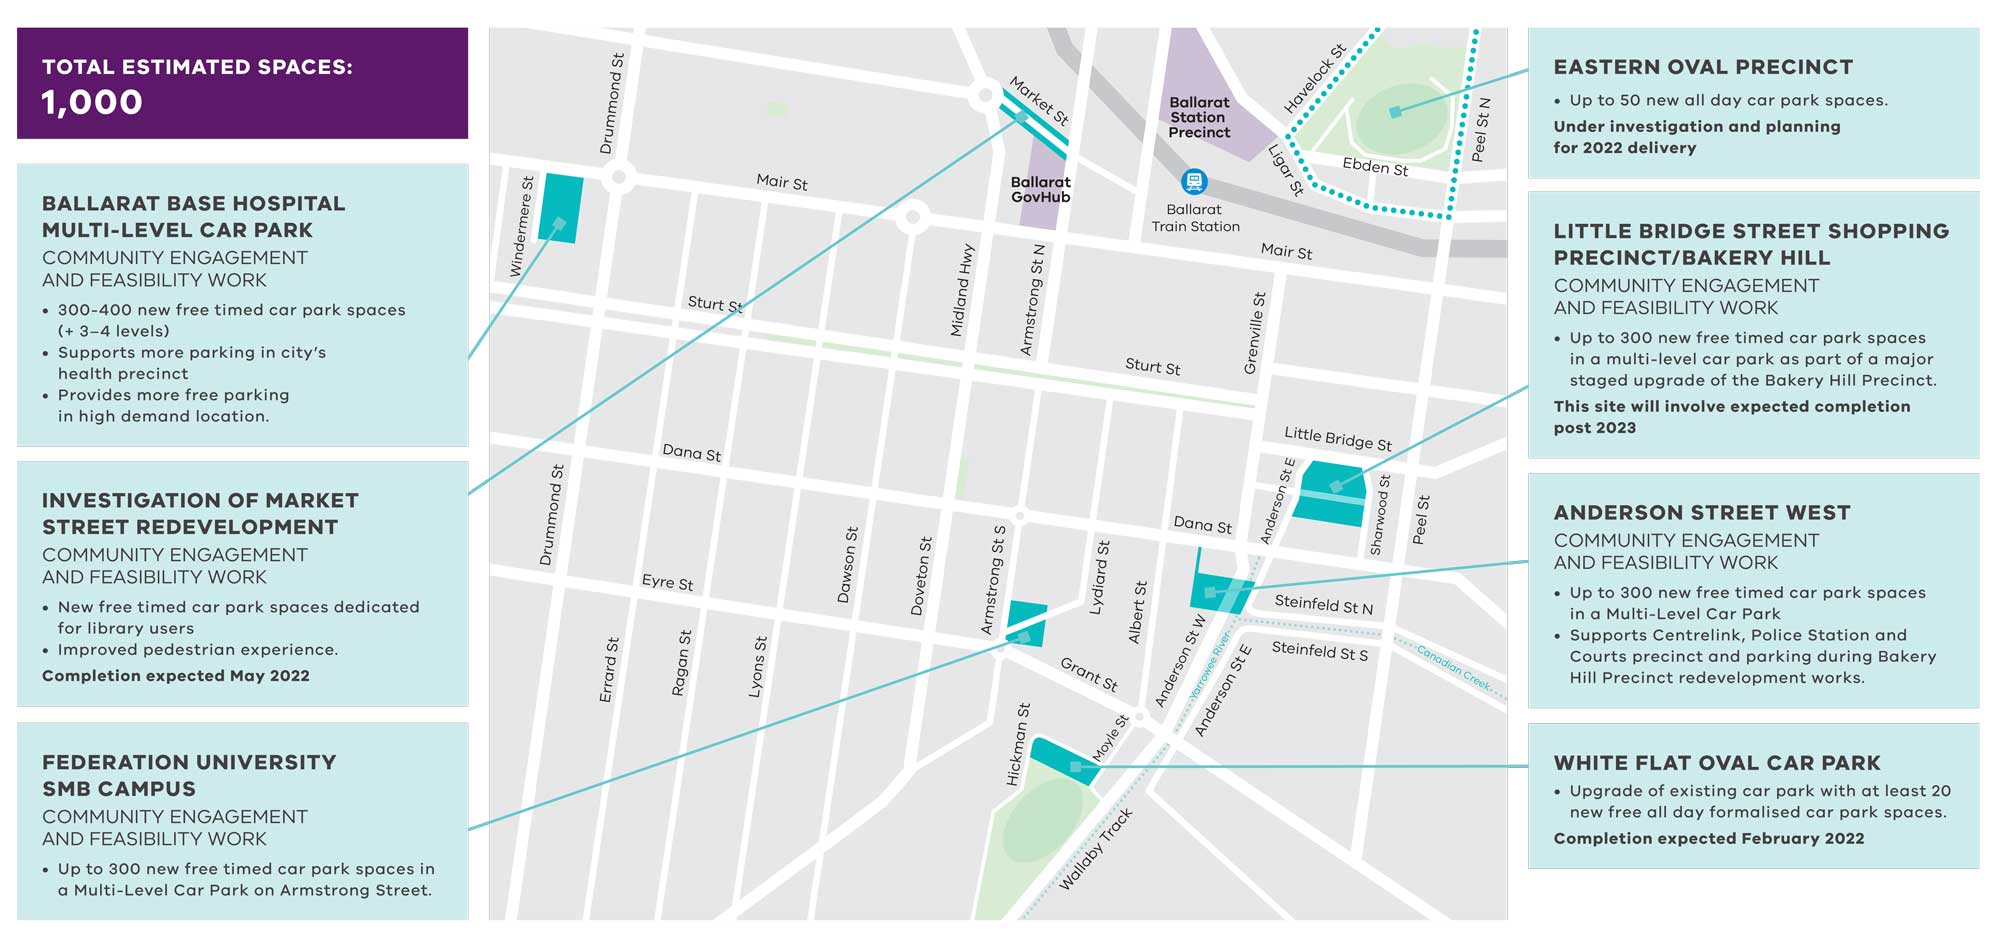 Map of proposed locations of car parks in Ballarat under the Regional Car PArks Fund